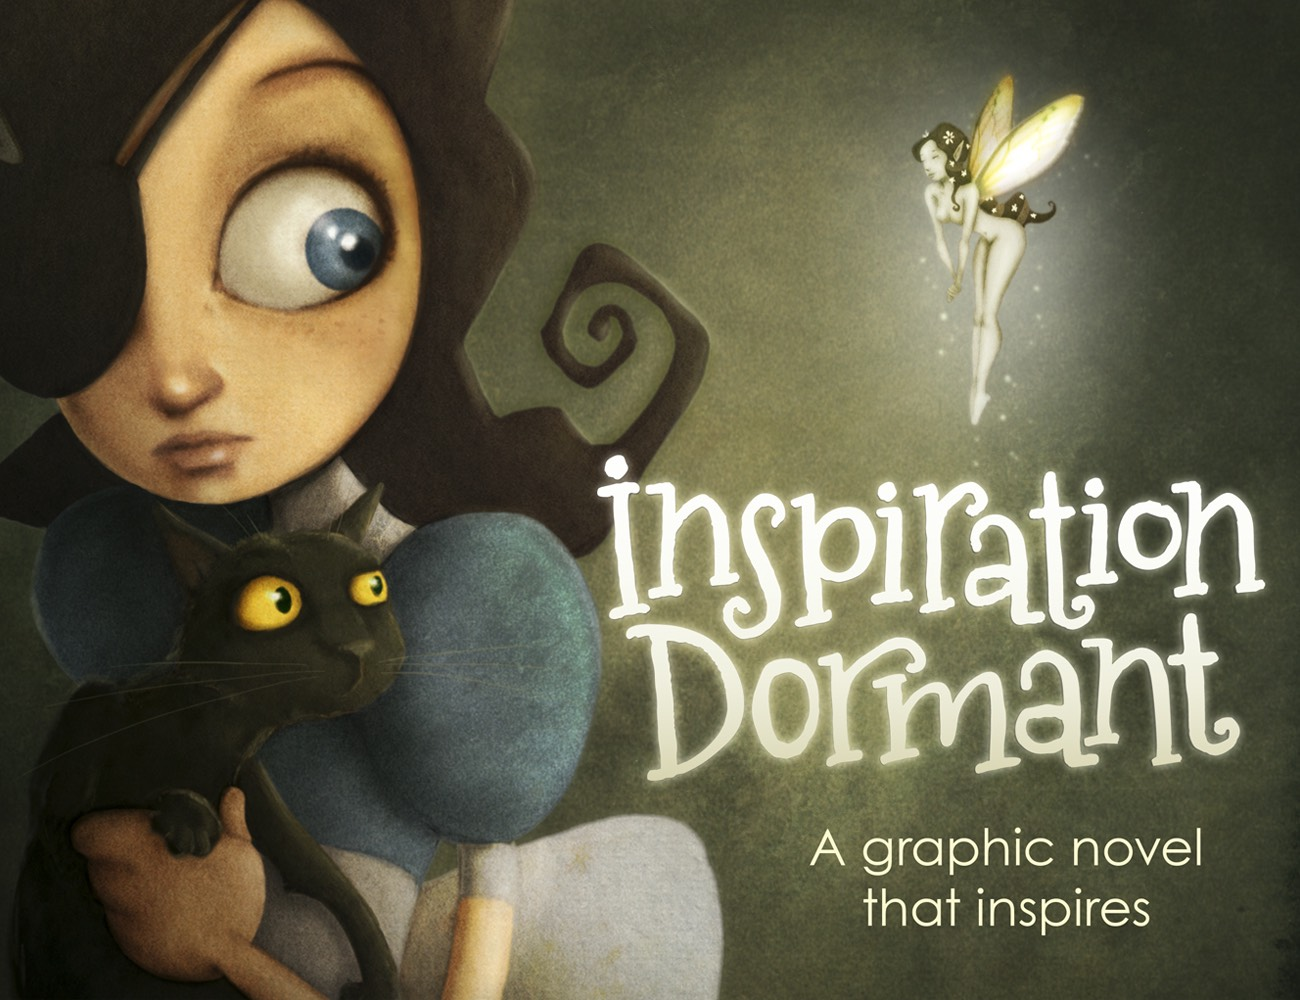 Inspiration Dormant, A Graphic Novel That Inspires